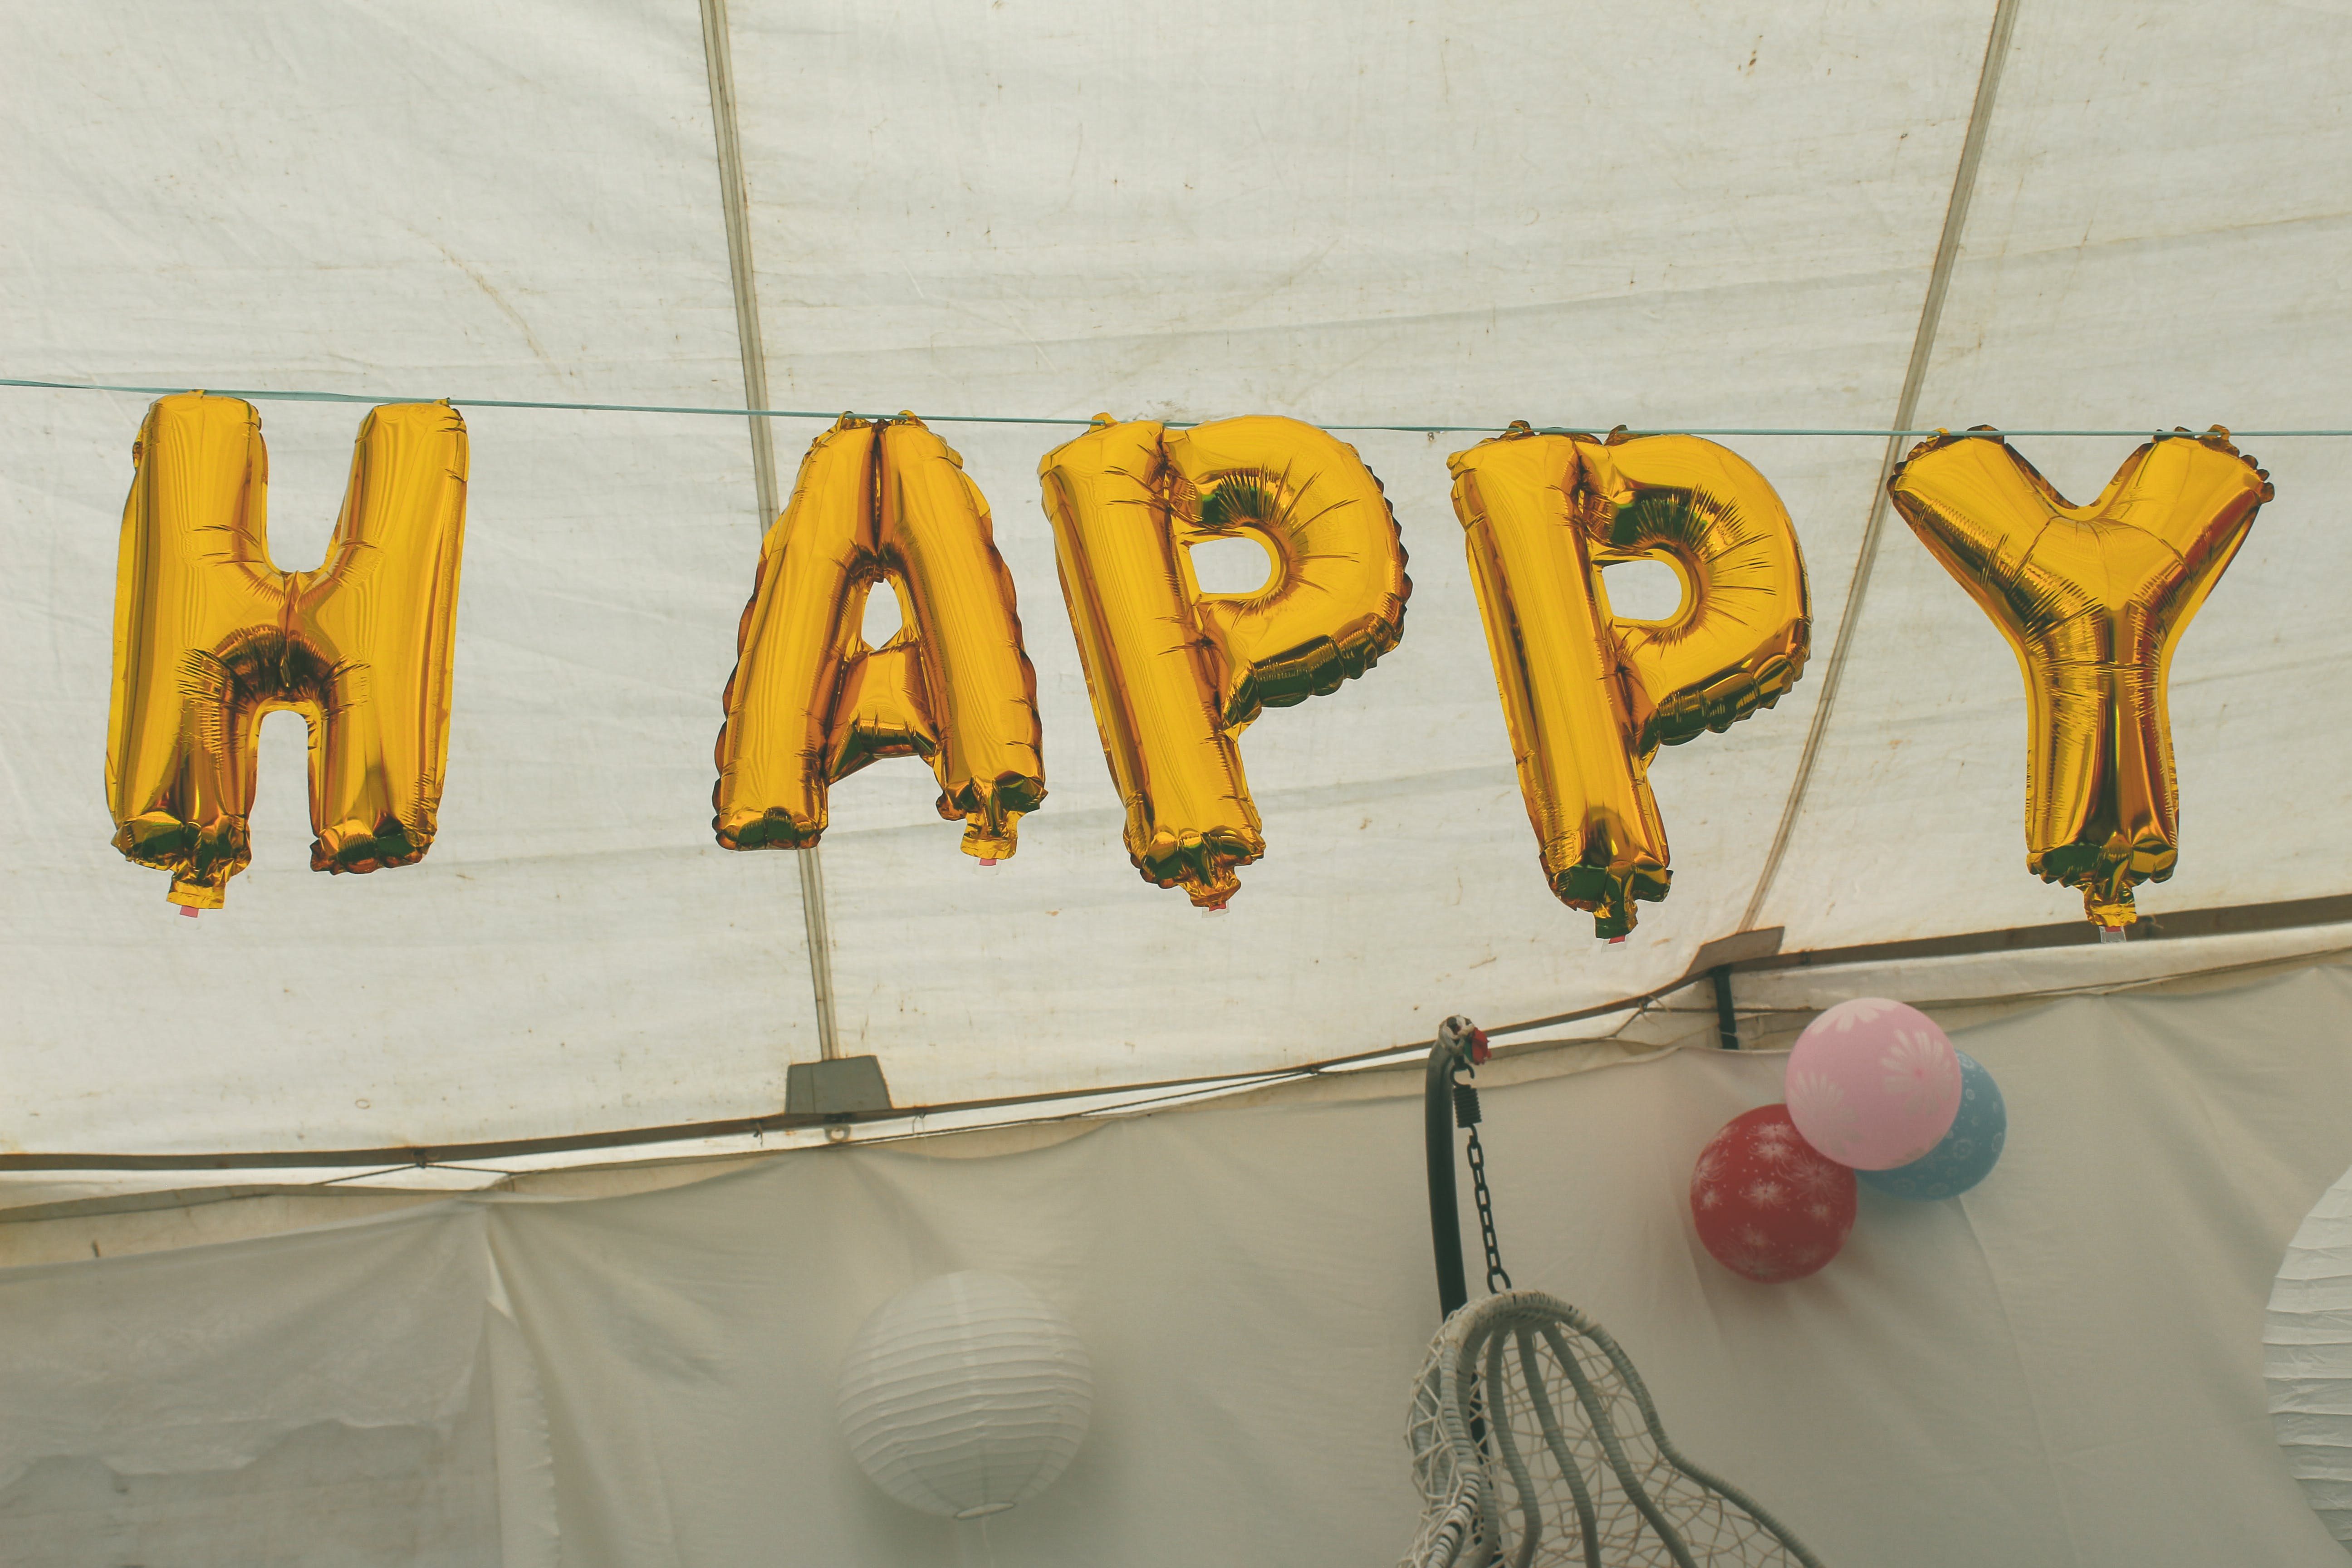 Gold Balloons Hanging On String